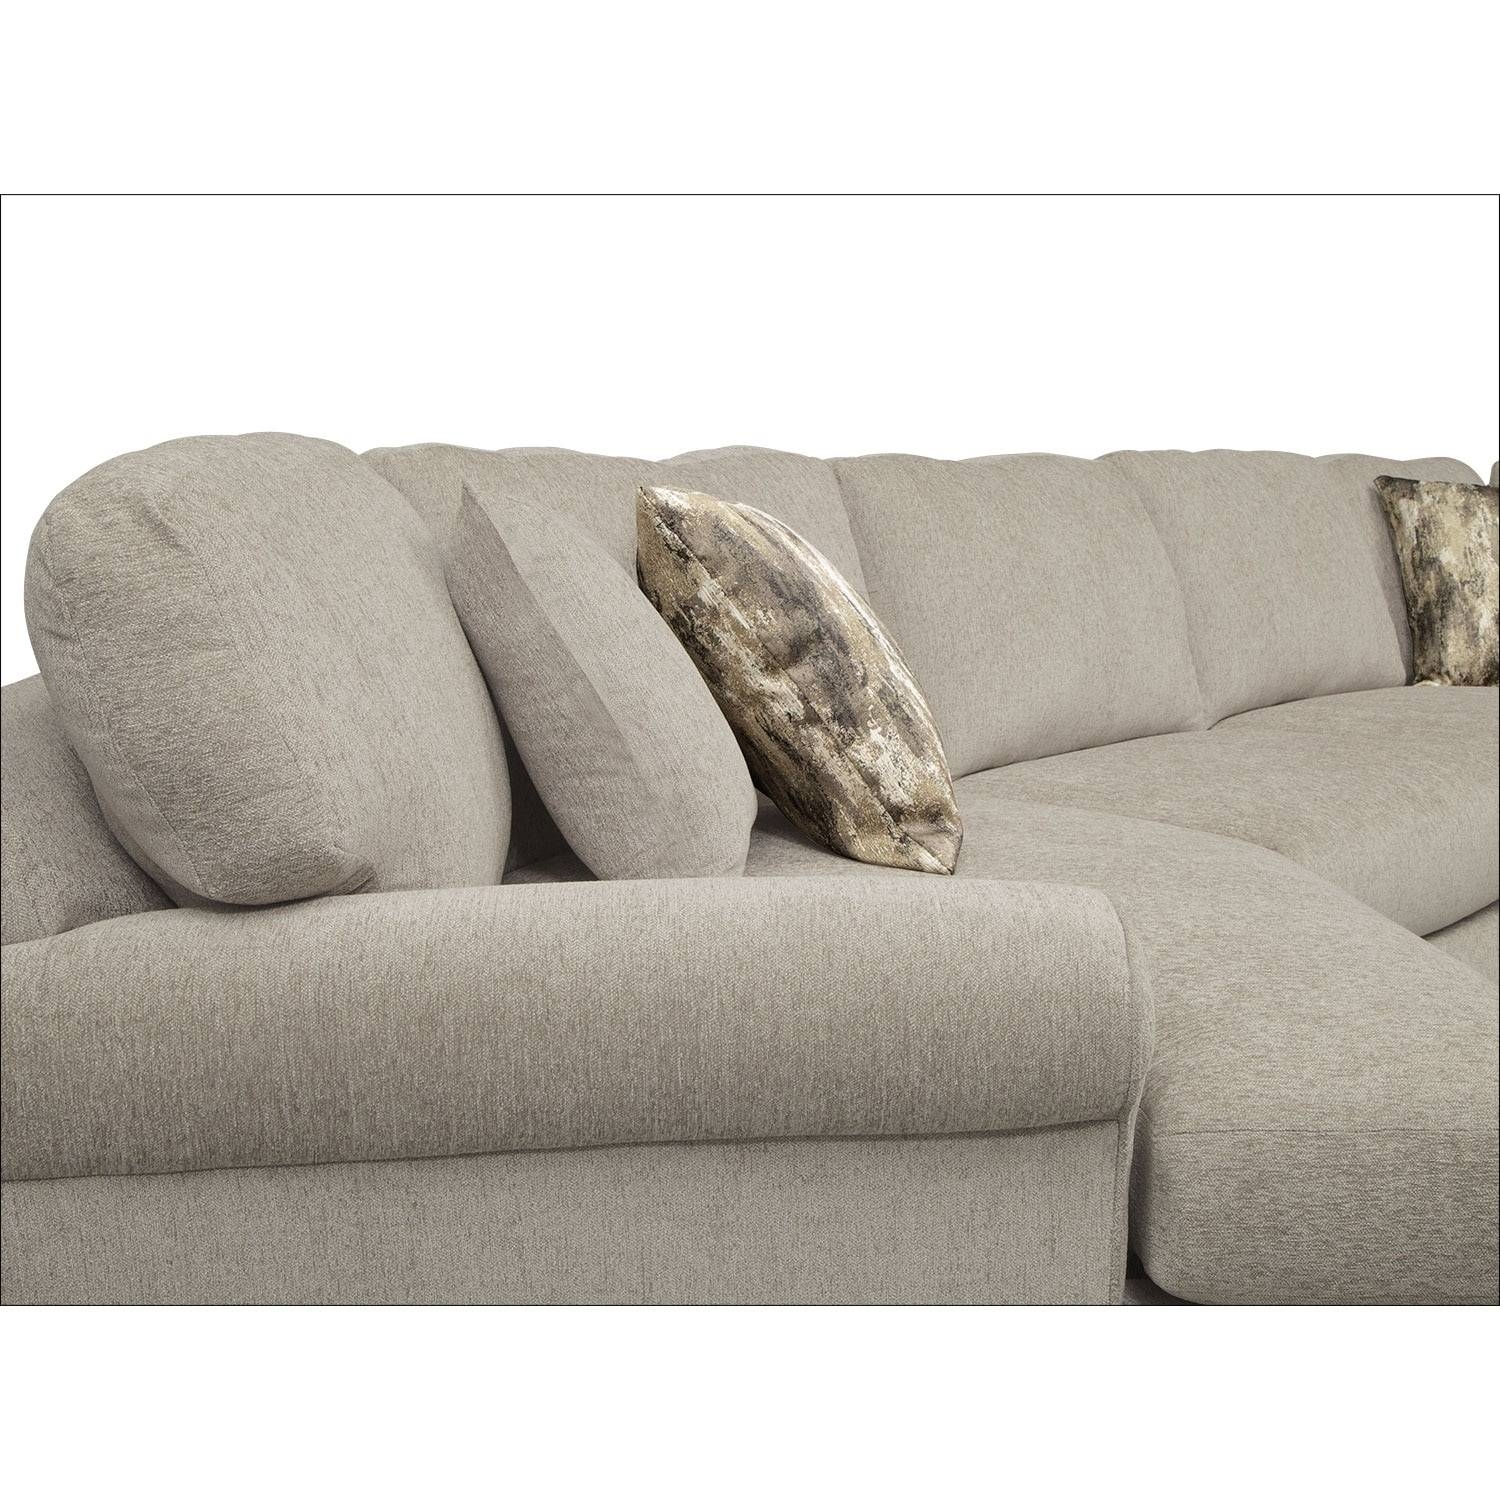 Karma 3-Piece Sectional With Left-Facing Cuddler - Mink | Value within Cuddler Sectional Sofa (Image 15 of 30)